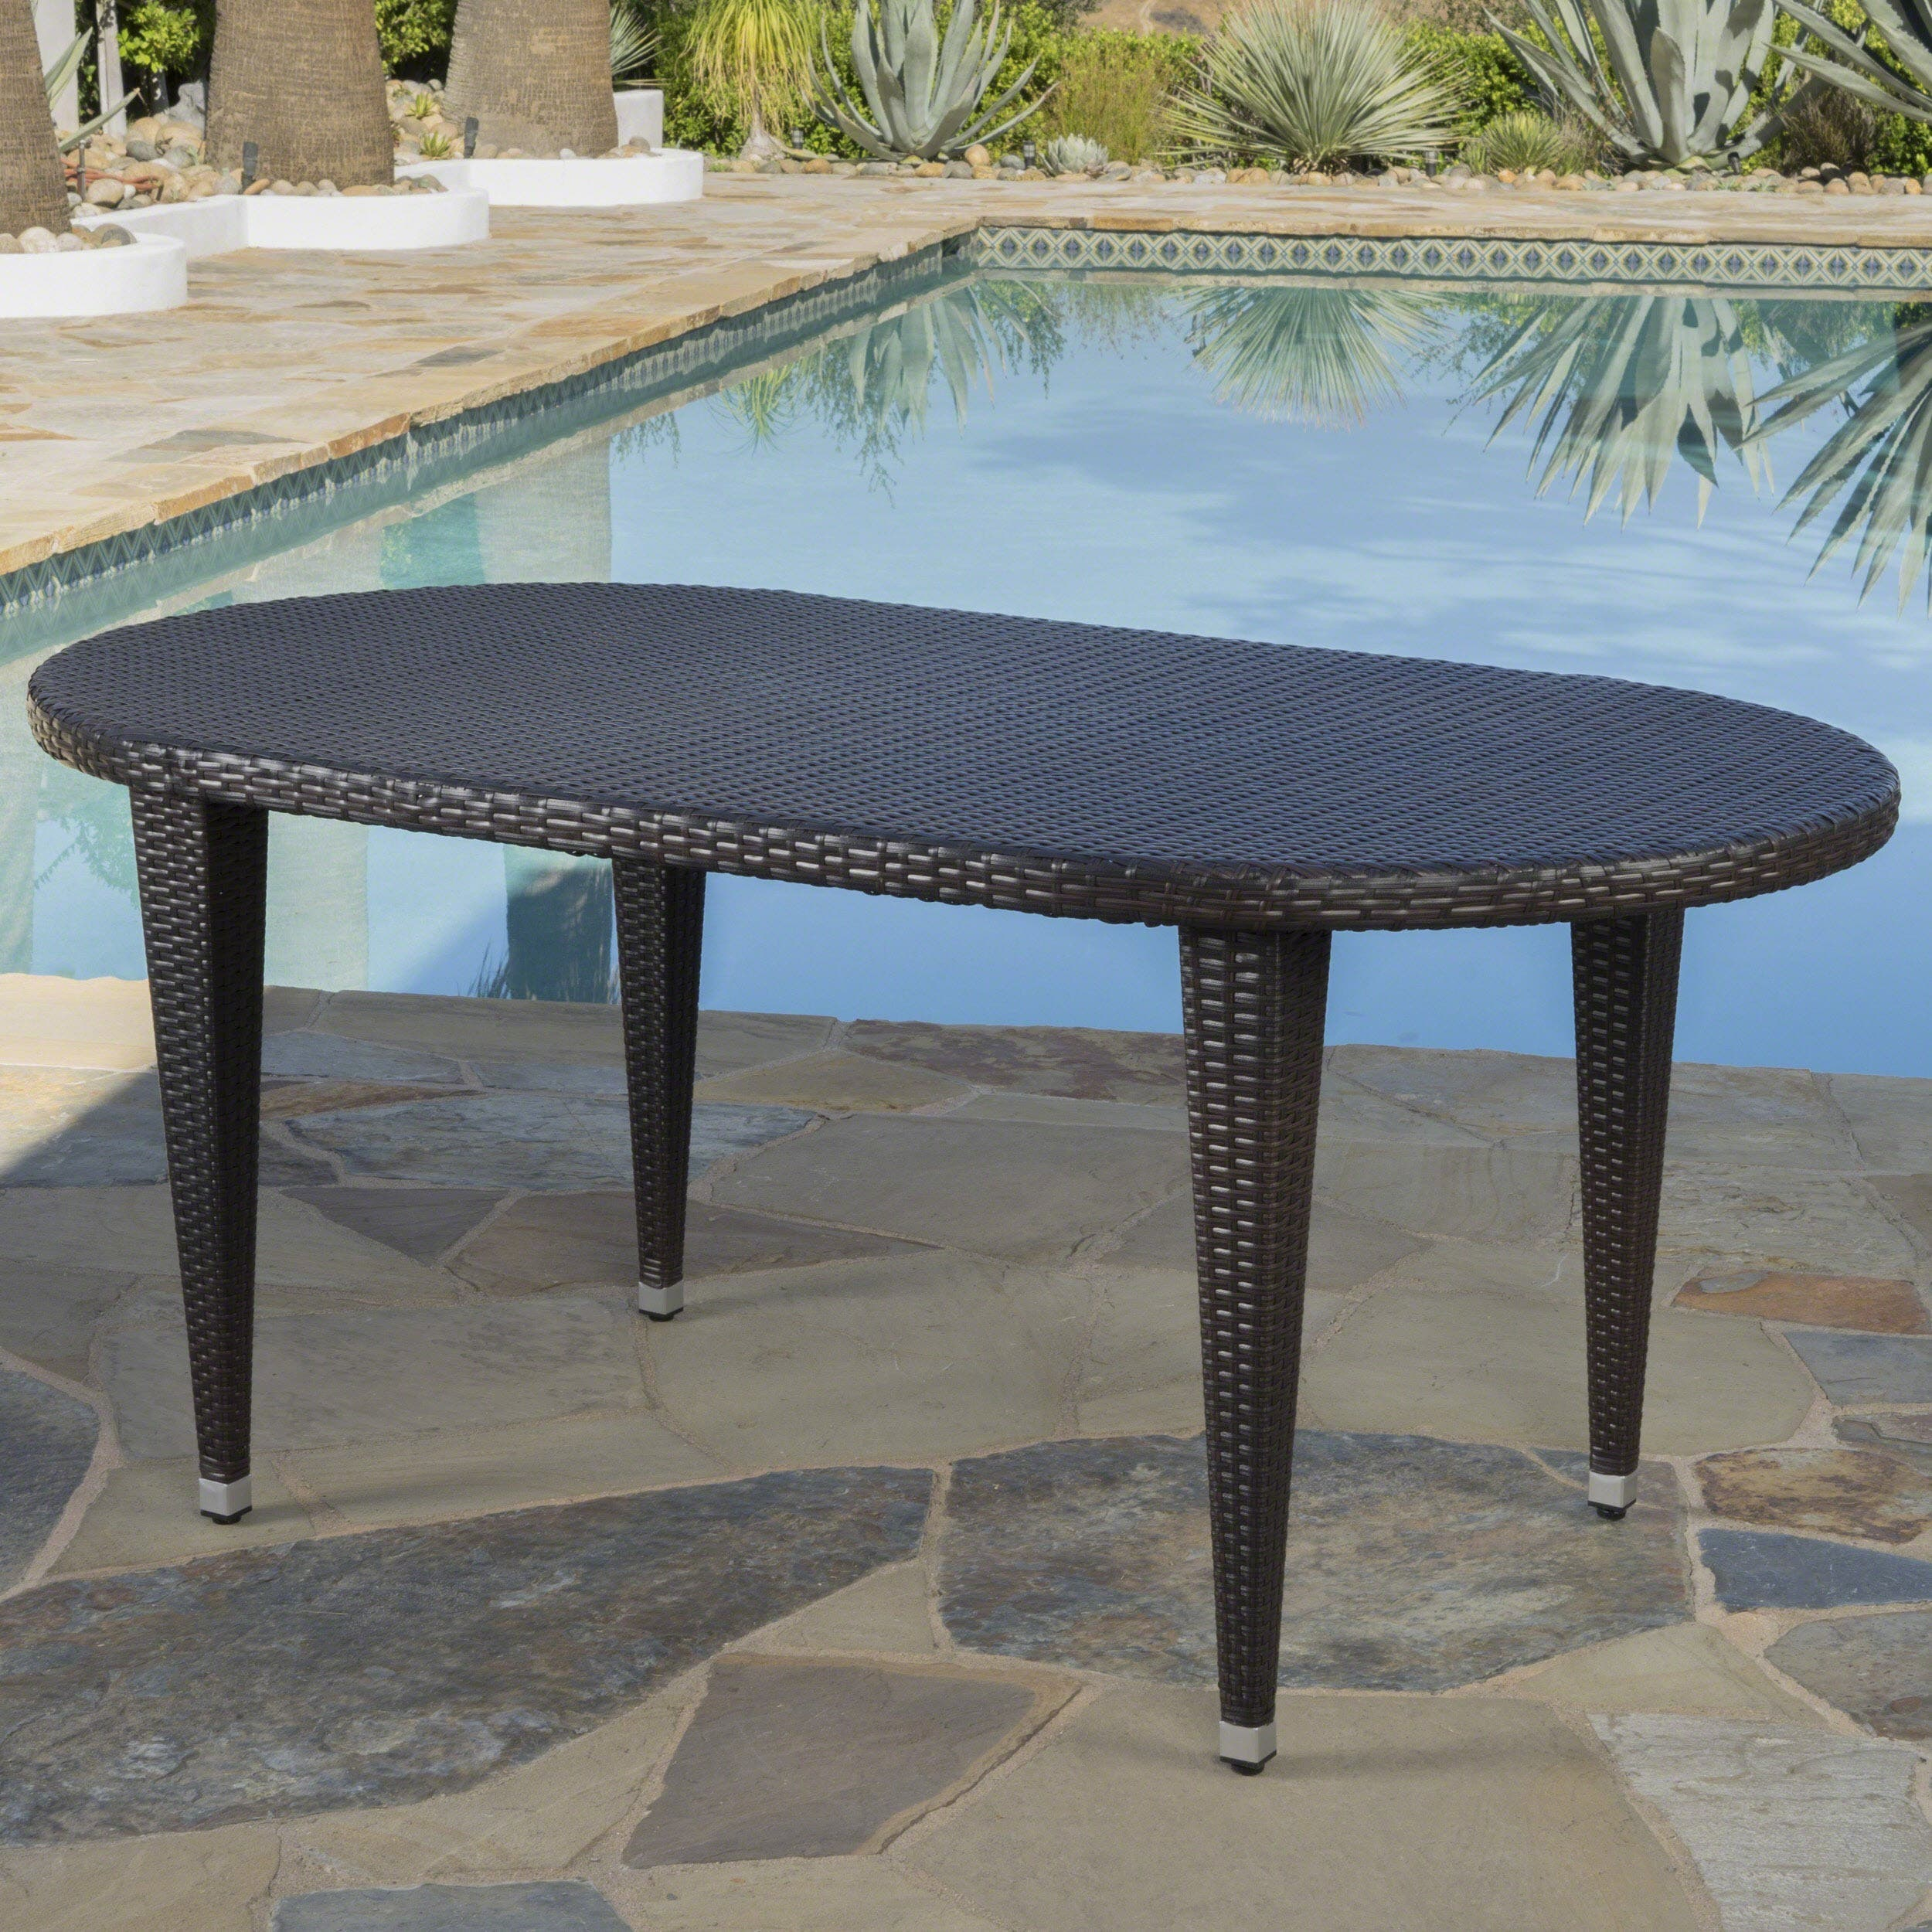 Outdoor Dining Tables For Less Overstockcom : Dominica Outdoor Oval Wicker 69 inch Wicker Dining Table by Christopher Knight Home aa316443 4857 486b 889b 6b9e7b73317f from www.overstock.com size 2500 x 2500 jpeg 593kB